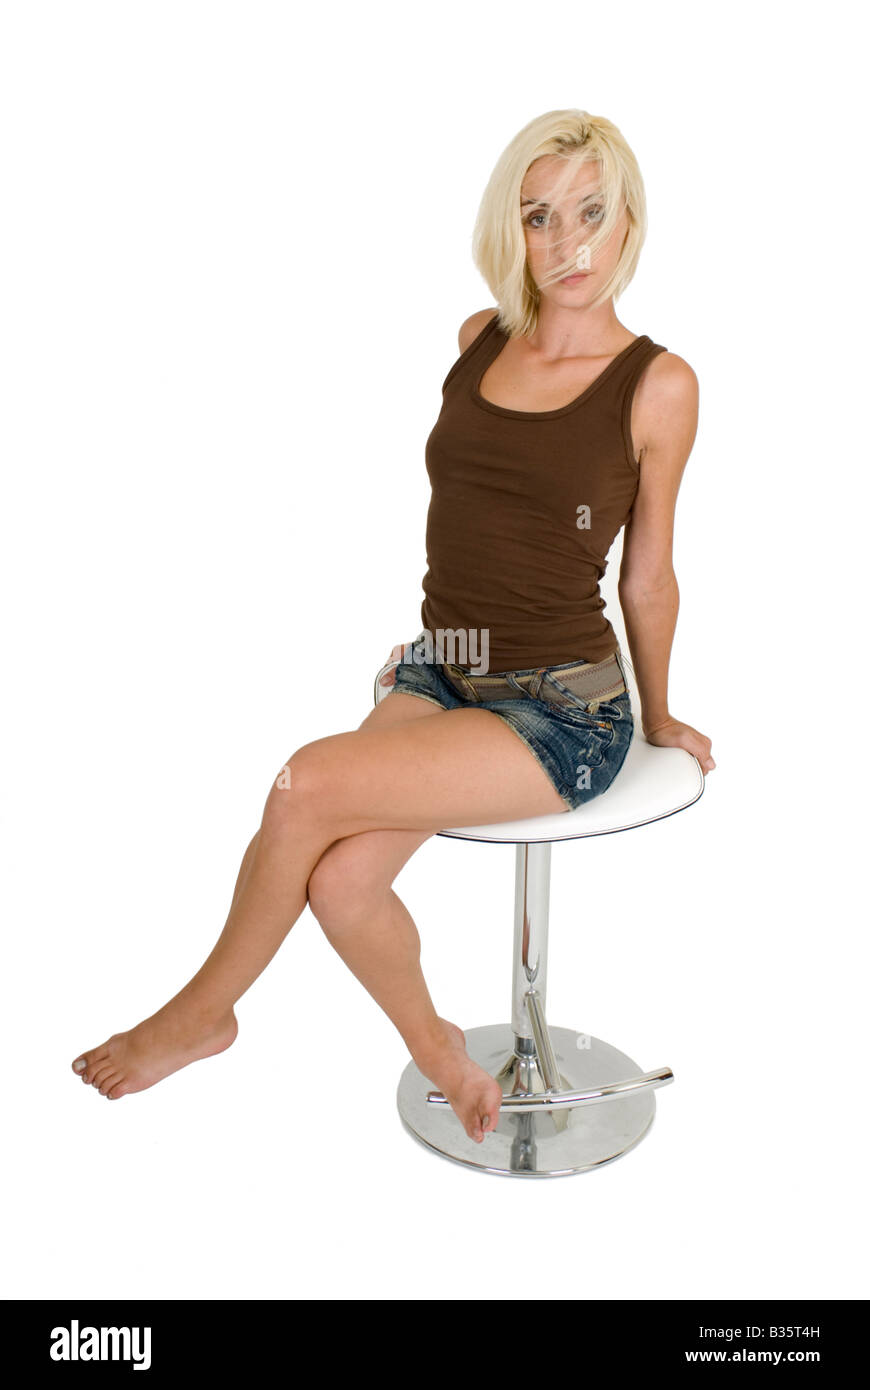 Bar Stool Stock Photos Amp Bar Stool Stock Images Alamy